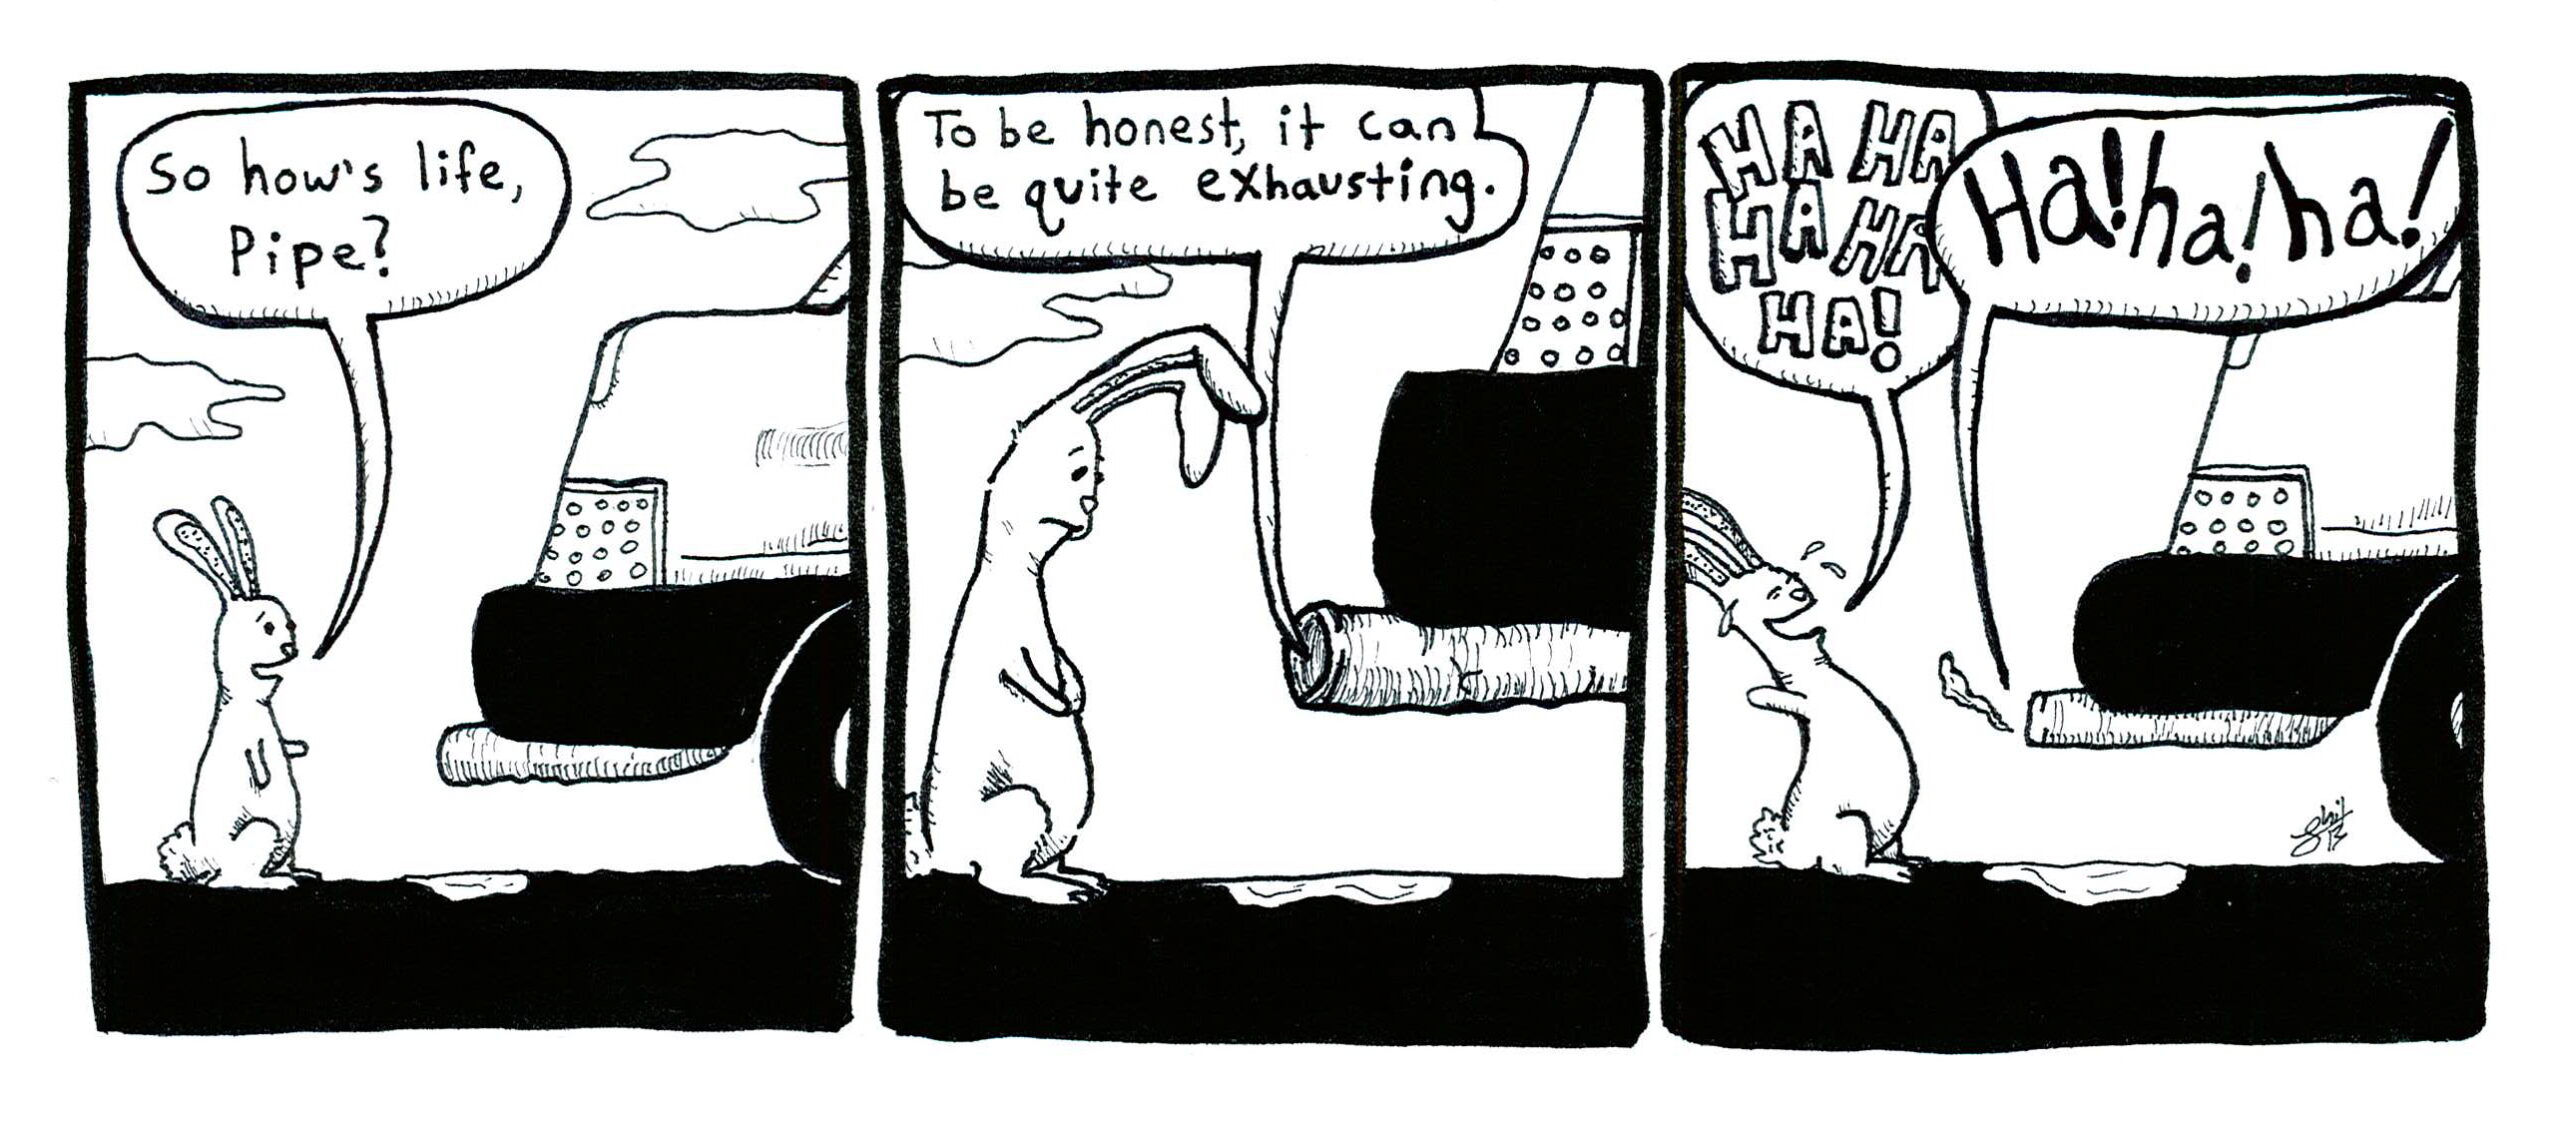 Comic strip illustrating a rabbit's conversation with an exhaust pipe about how exhausting life can be